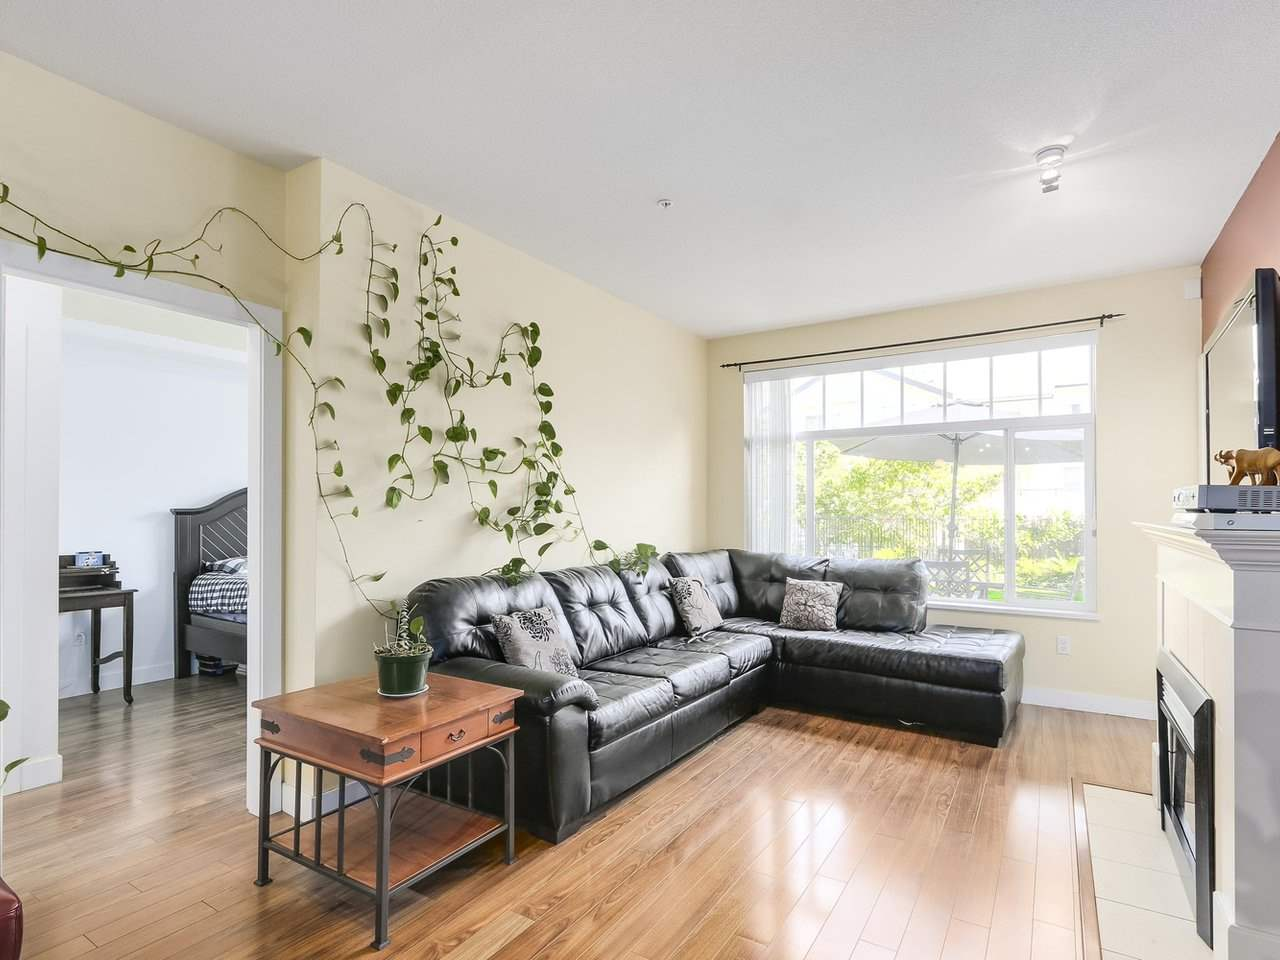 Condo Apartment at 101 2353 MARPOLE AVENUE, Unit 101, Port Coquitlam, British Columbia. Image 2